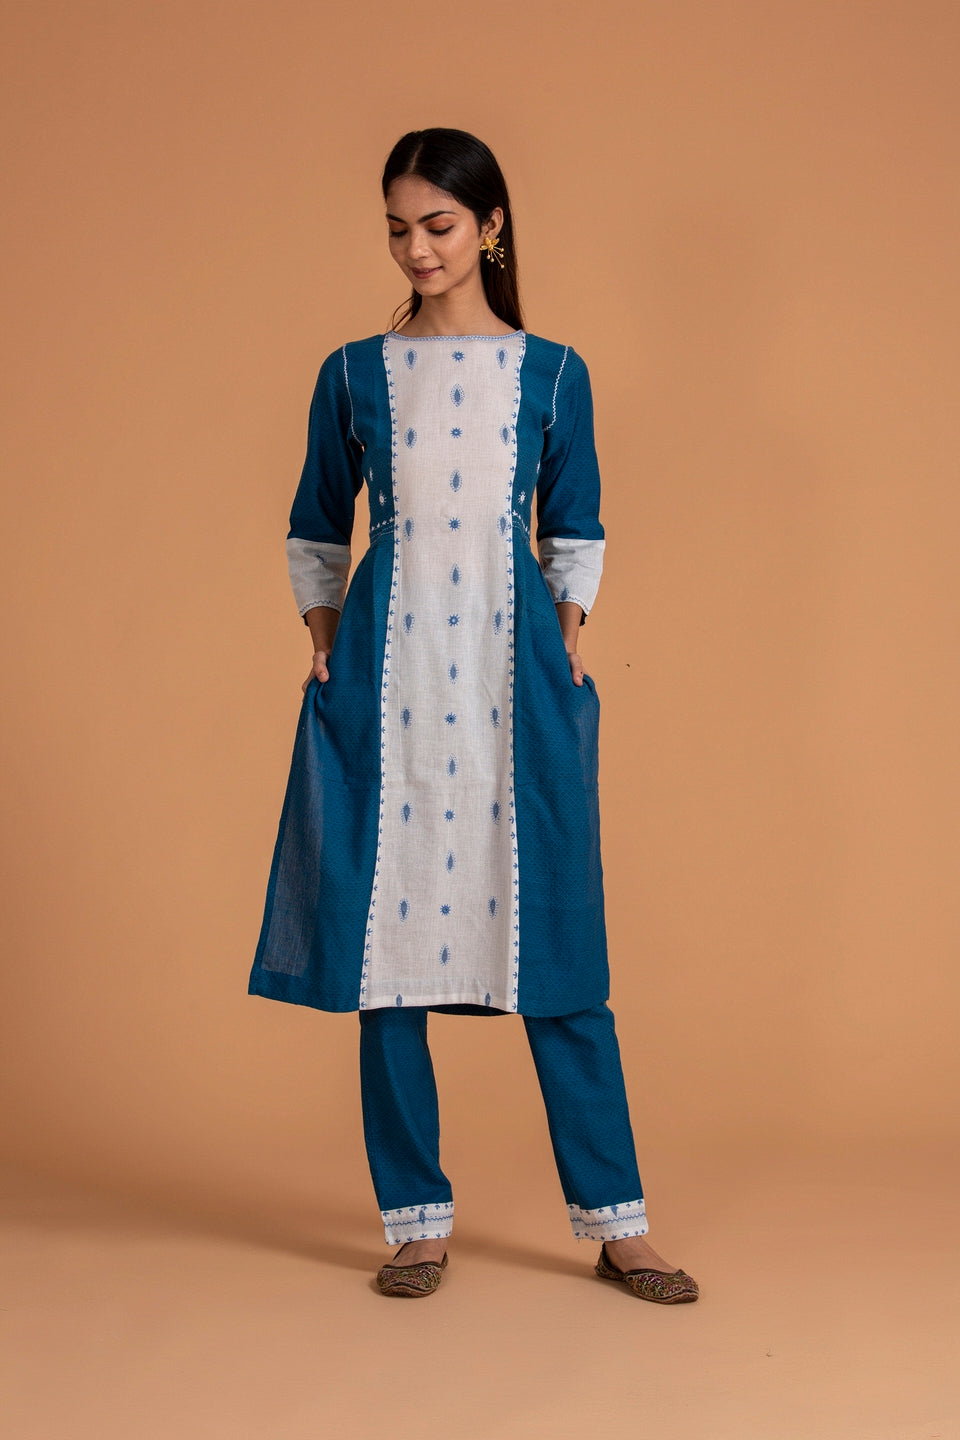 Ruma Devi Collection - Panelled Kurti with Trouser Pants